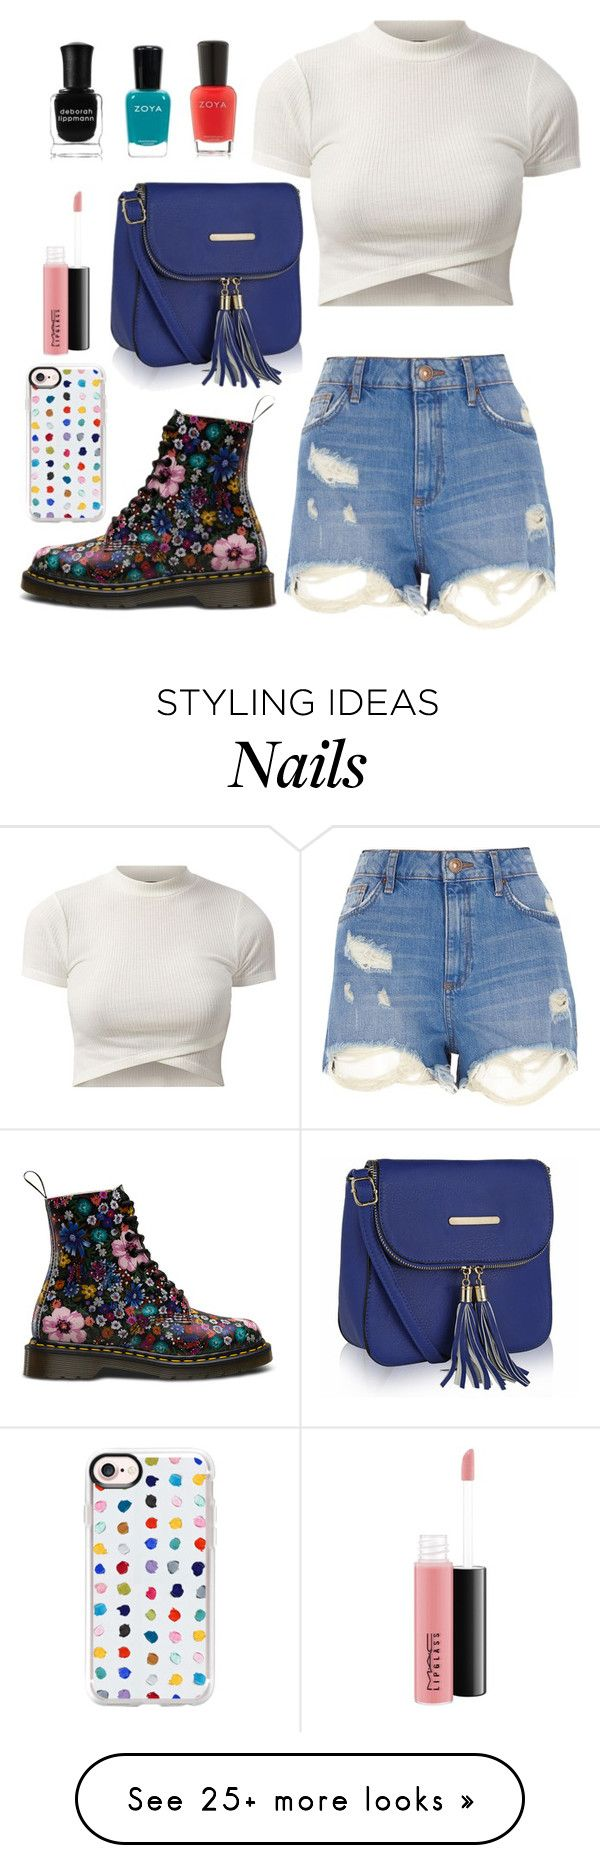 """Untitled #1246"" by o-p-backe on Polyvore featuring River Island, Casetify, MKF Collection, MAC Cosmetics, Zoya and Deborah Lippmann"